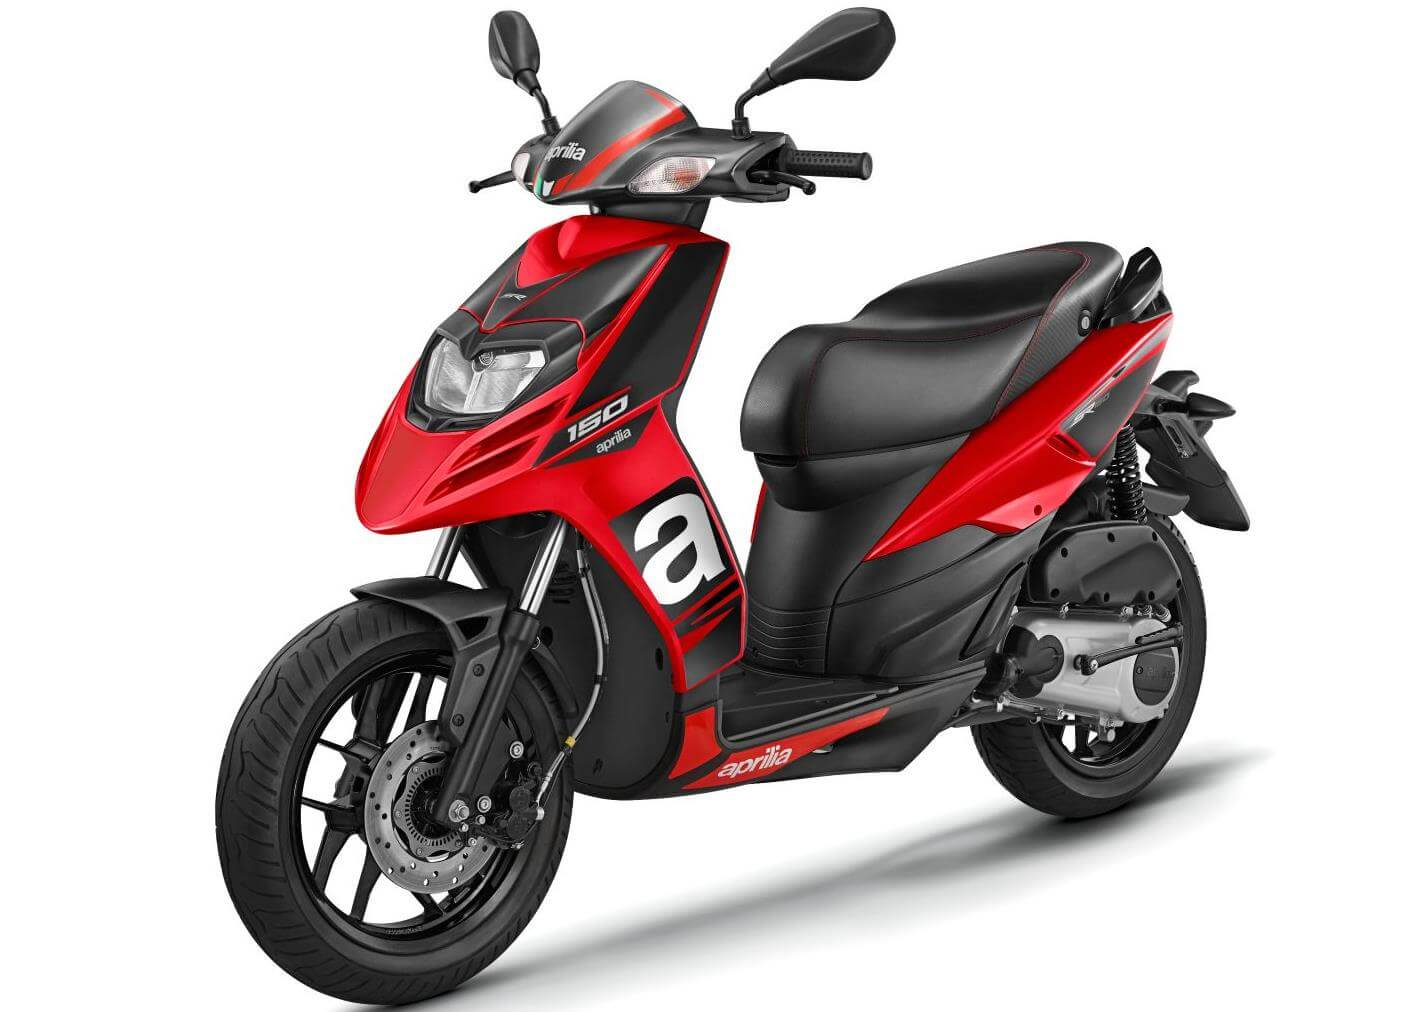 Best 150cc Scooters In India In 2021 New 150cc Scooters In India